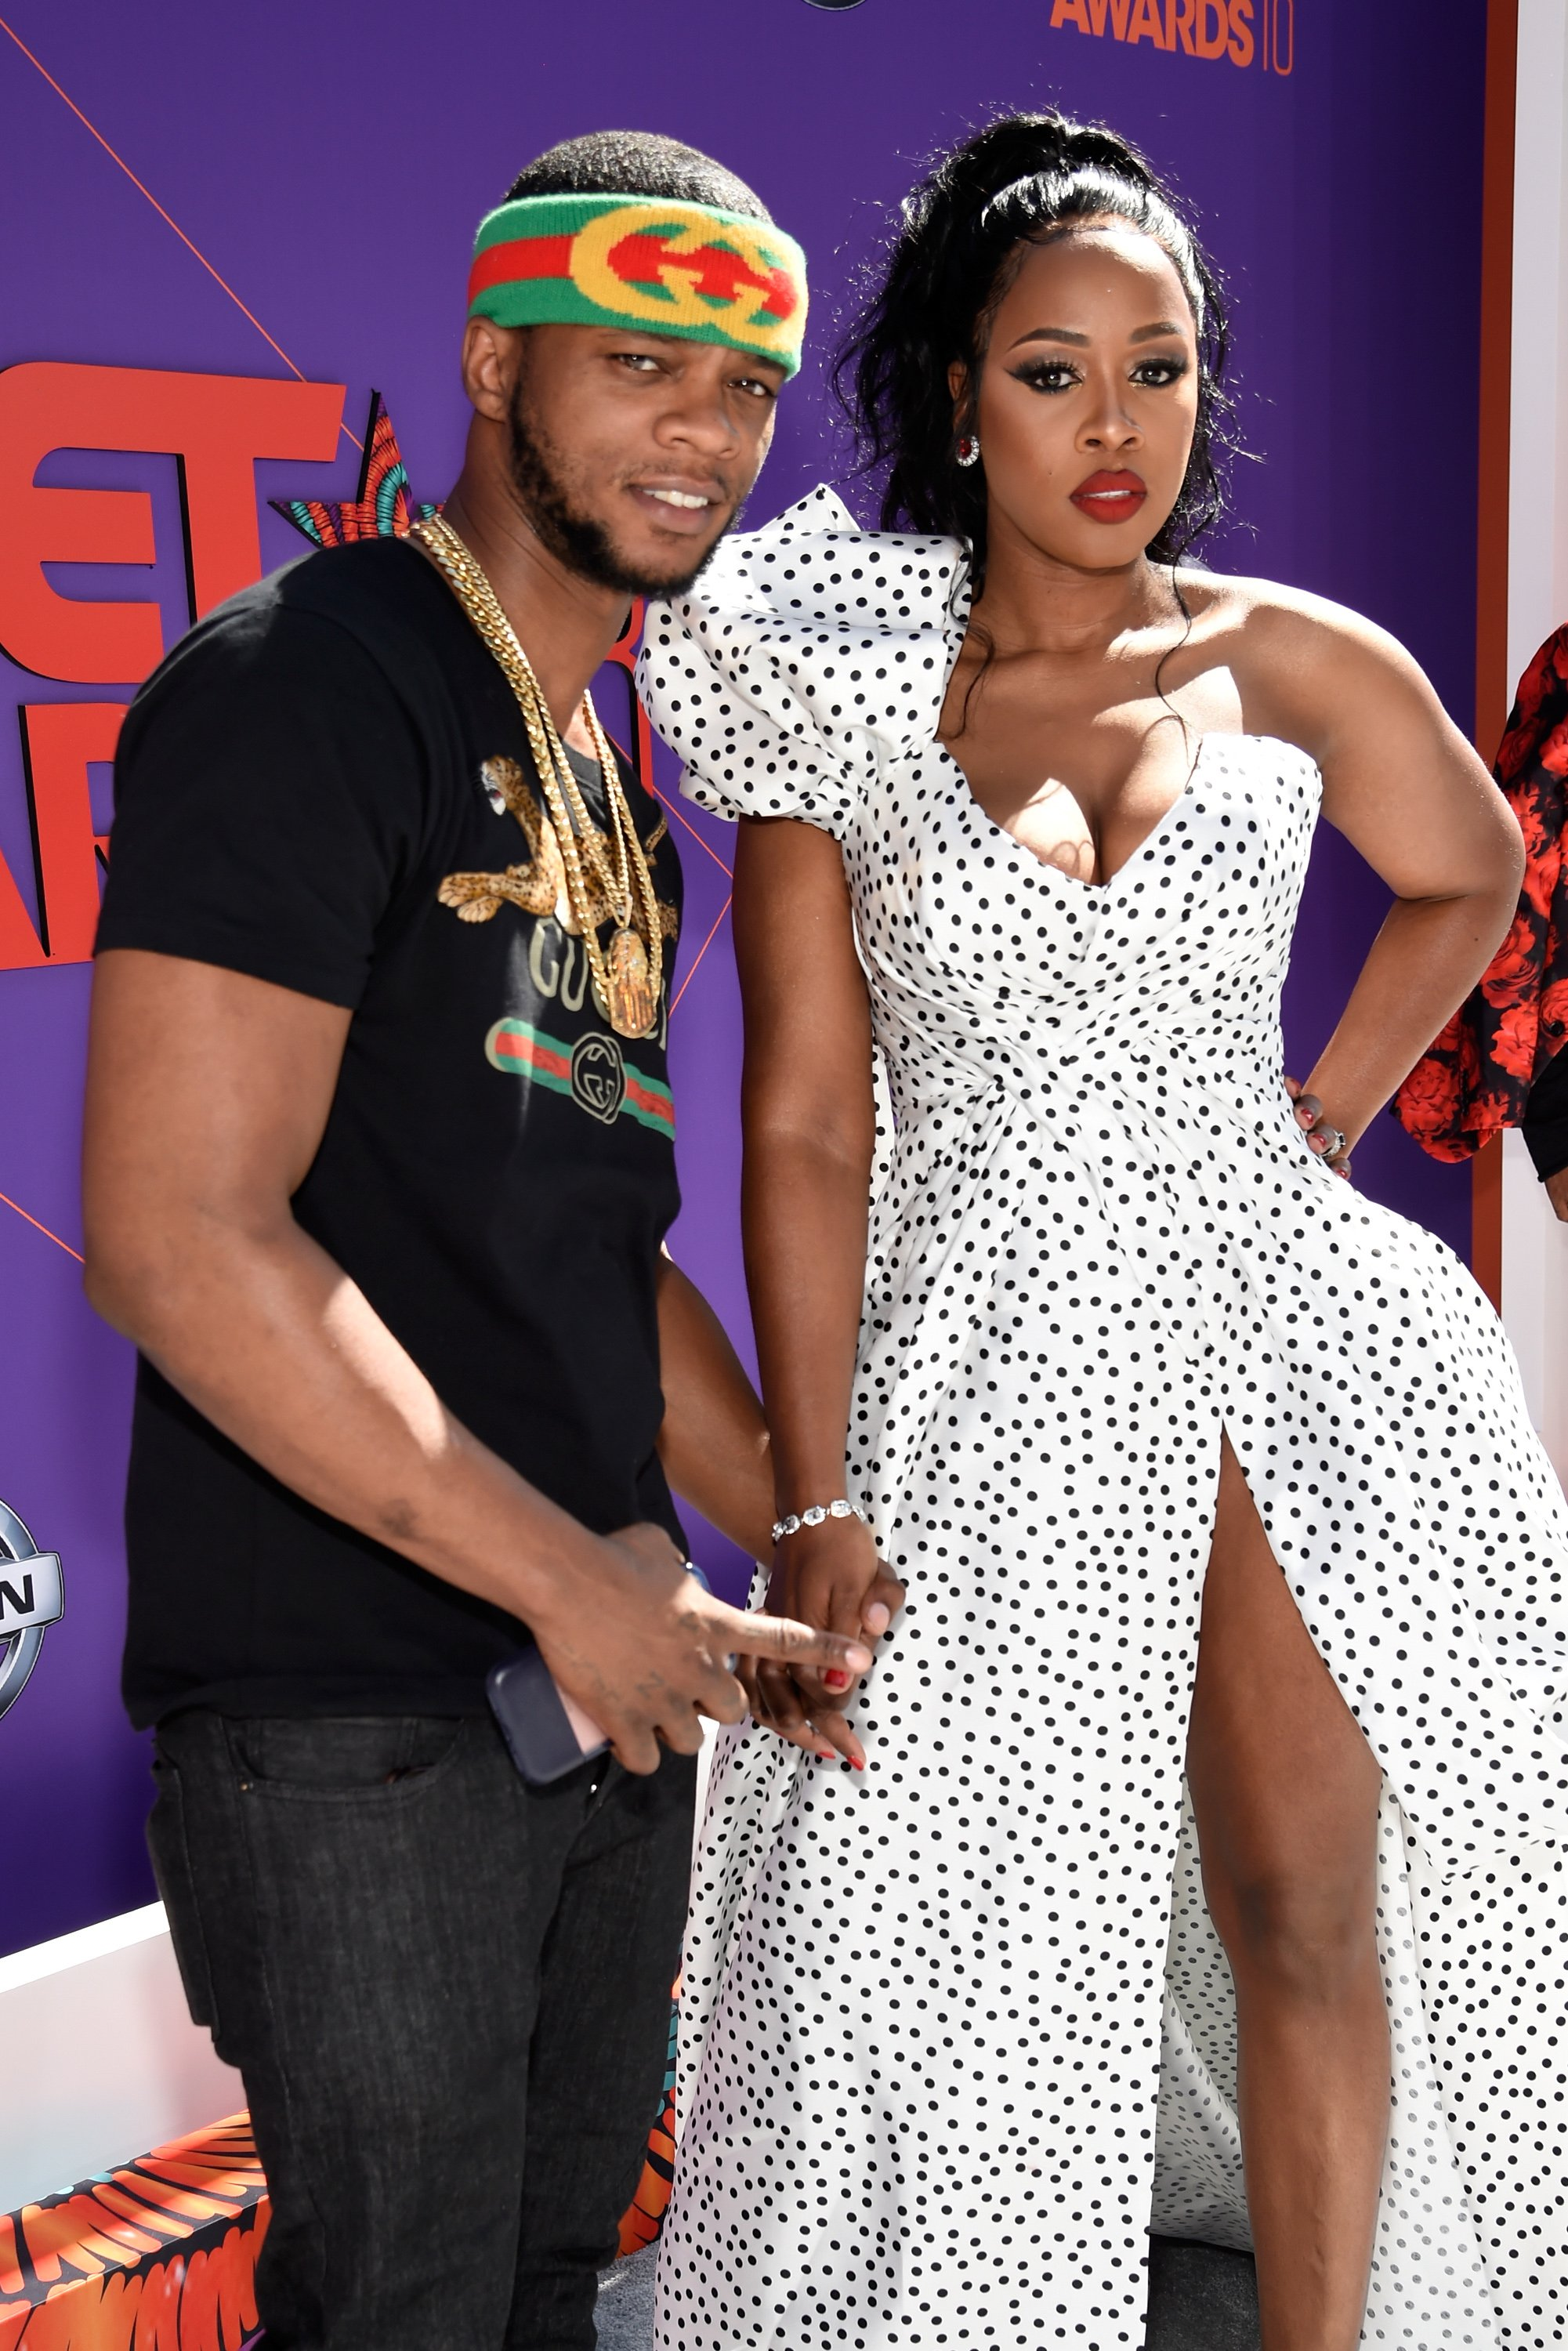 Papoose and Remy Ma pose at the 2018 BET Awards at Microsoft Theatre on June 24, 2018 in Los Angeles, California. | Source: Getty Images